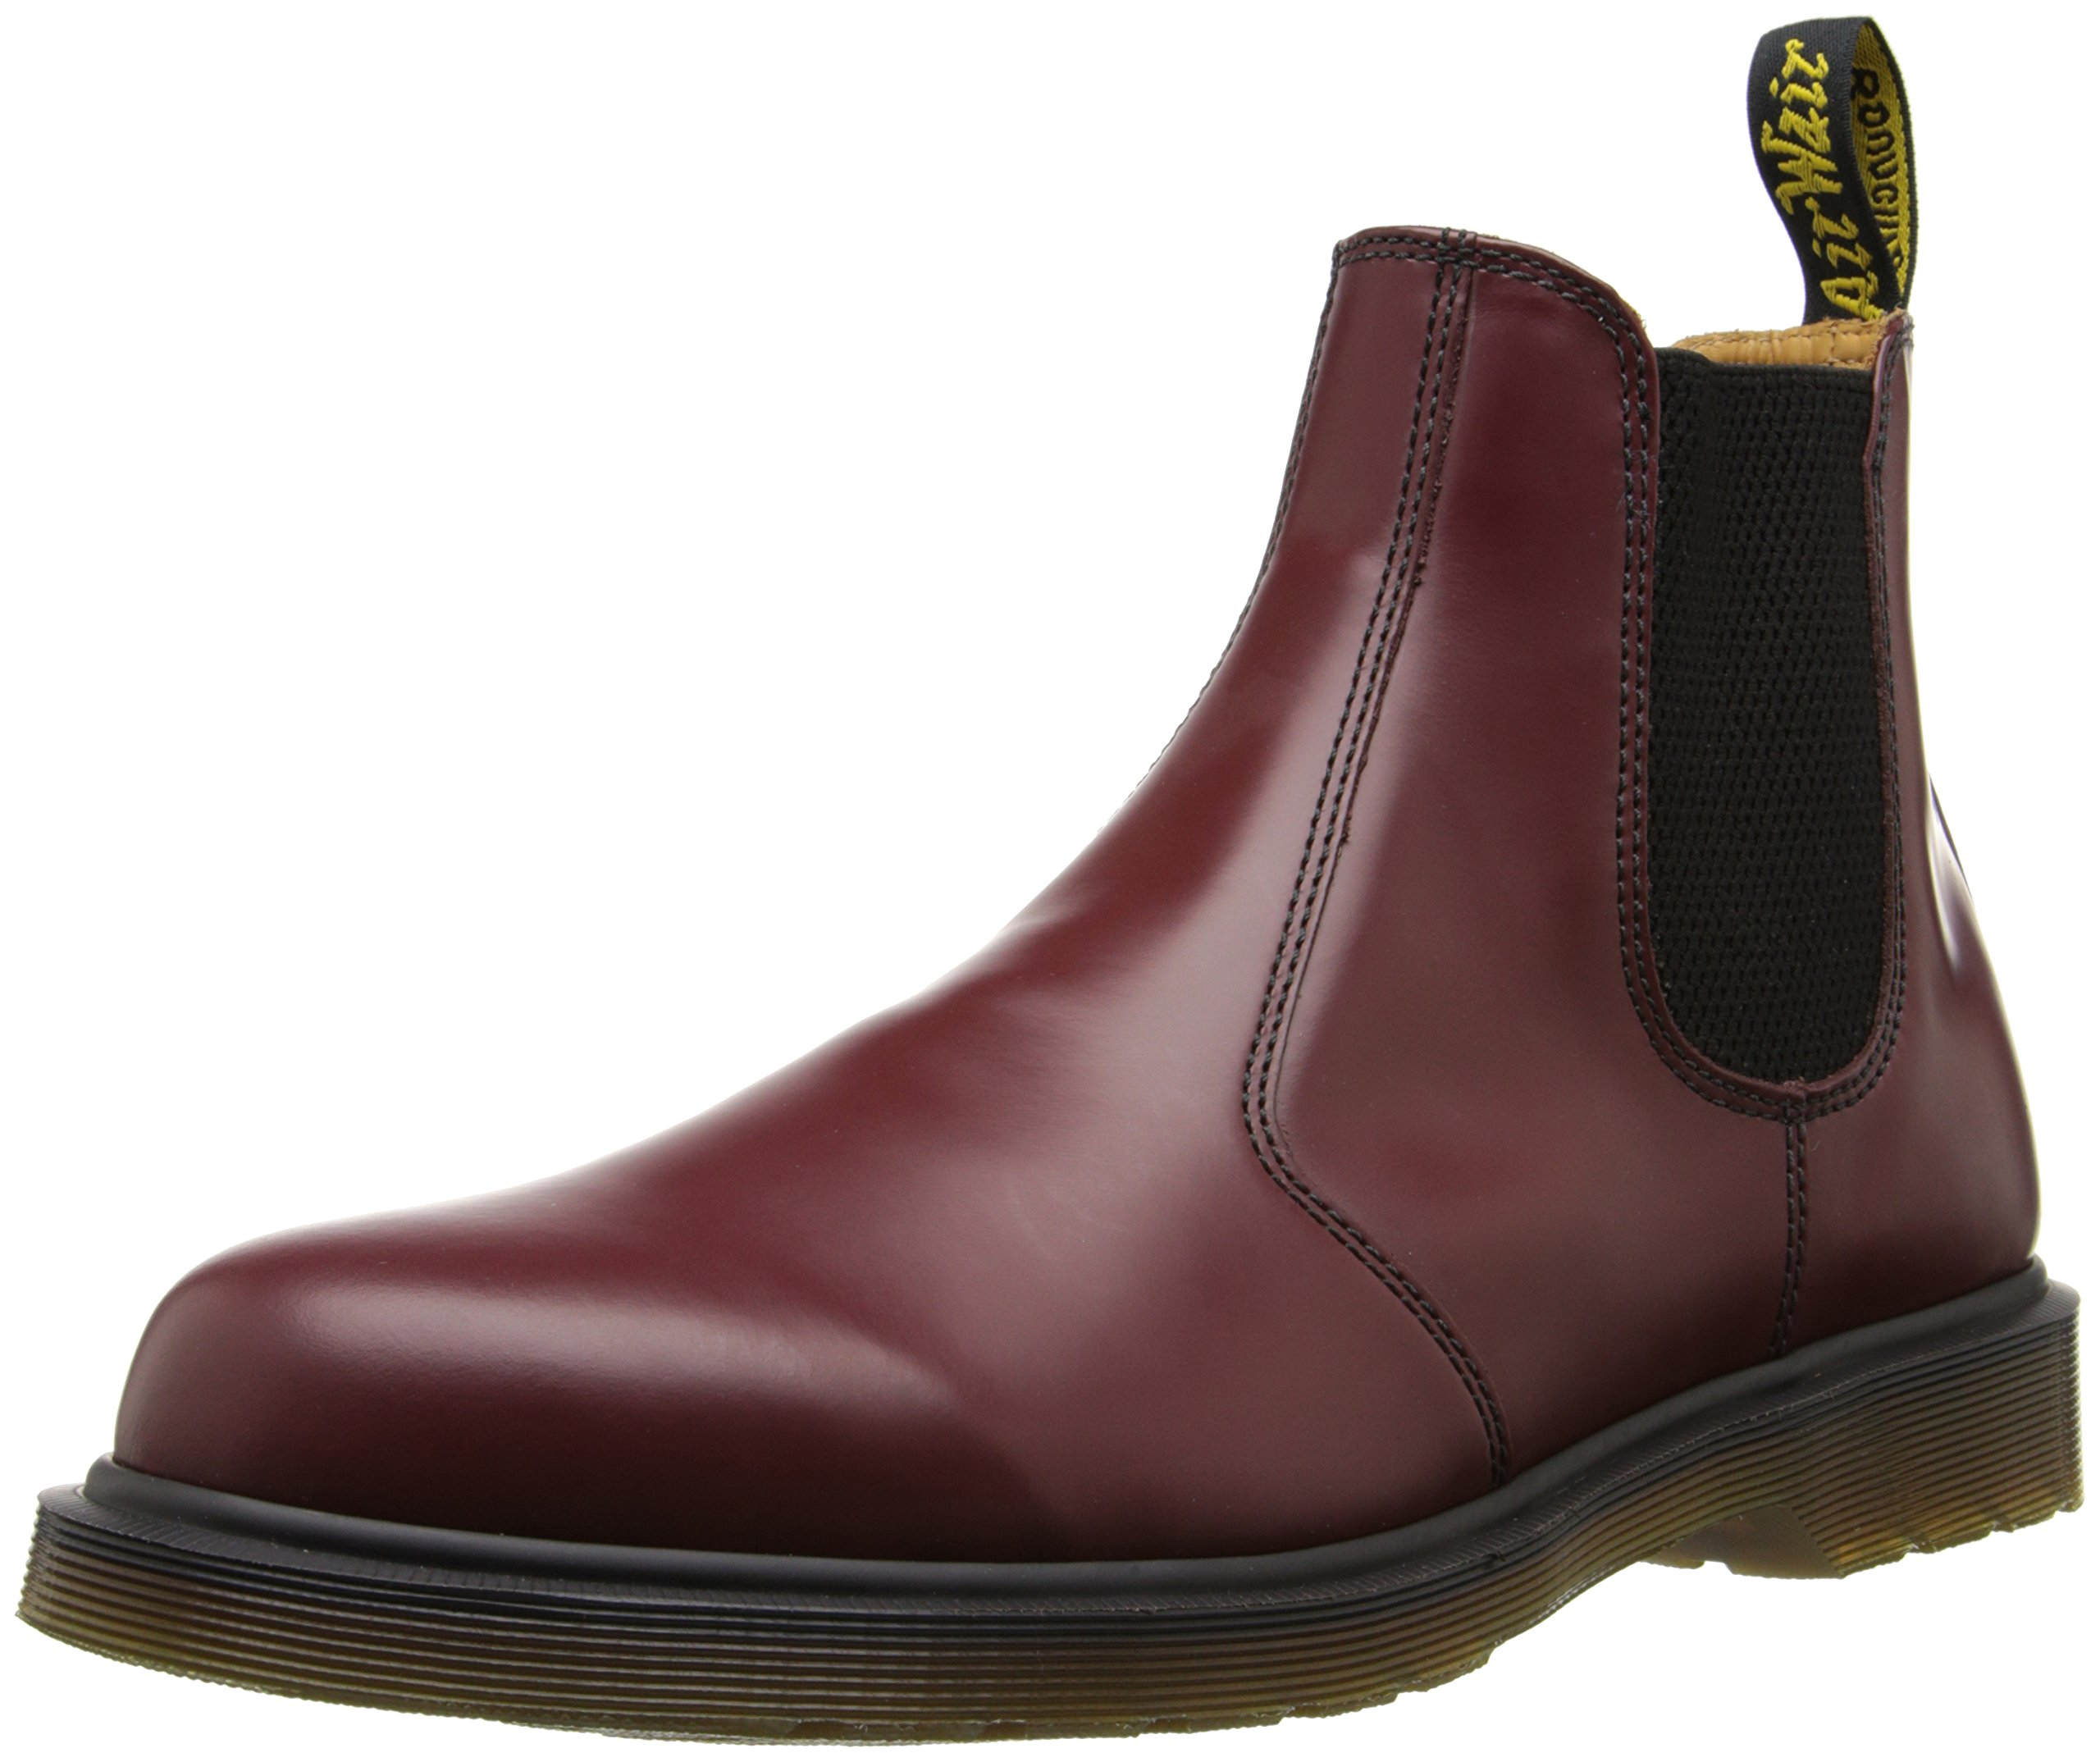 Dr. Martens 11853600 : 2976 Chelsea Boot,Cherry Red Smooth (5 UK Women's 7 Men's 6 M US, Cherry Red Smooth) by Dr. Martens